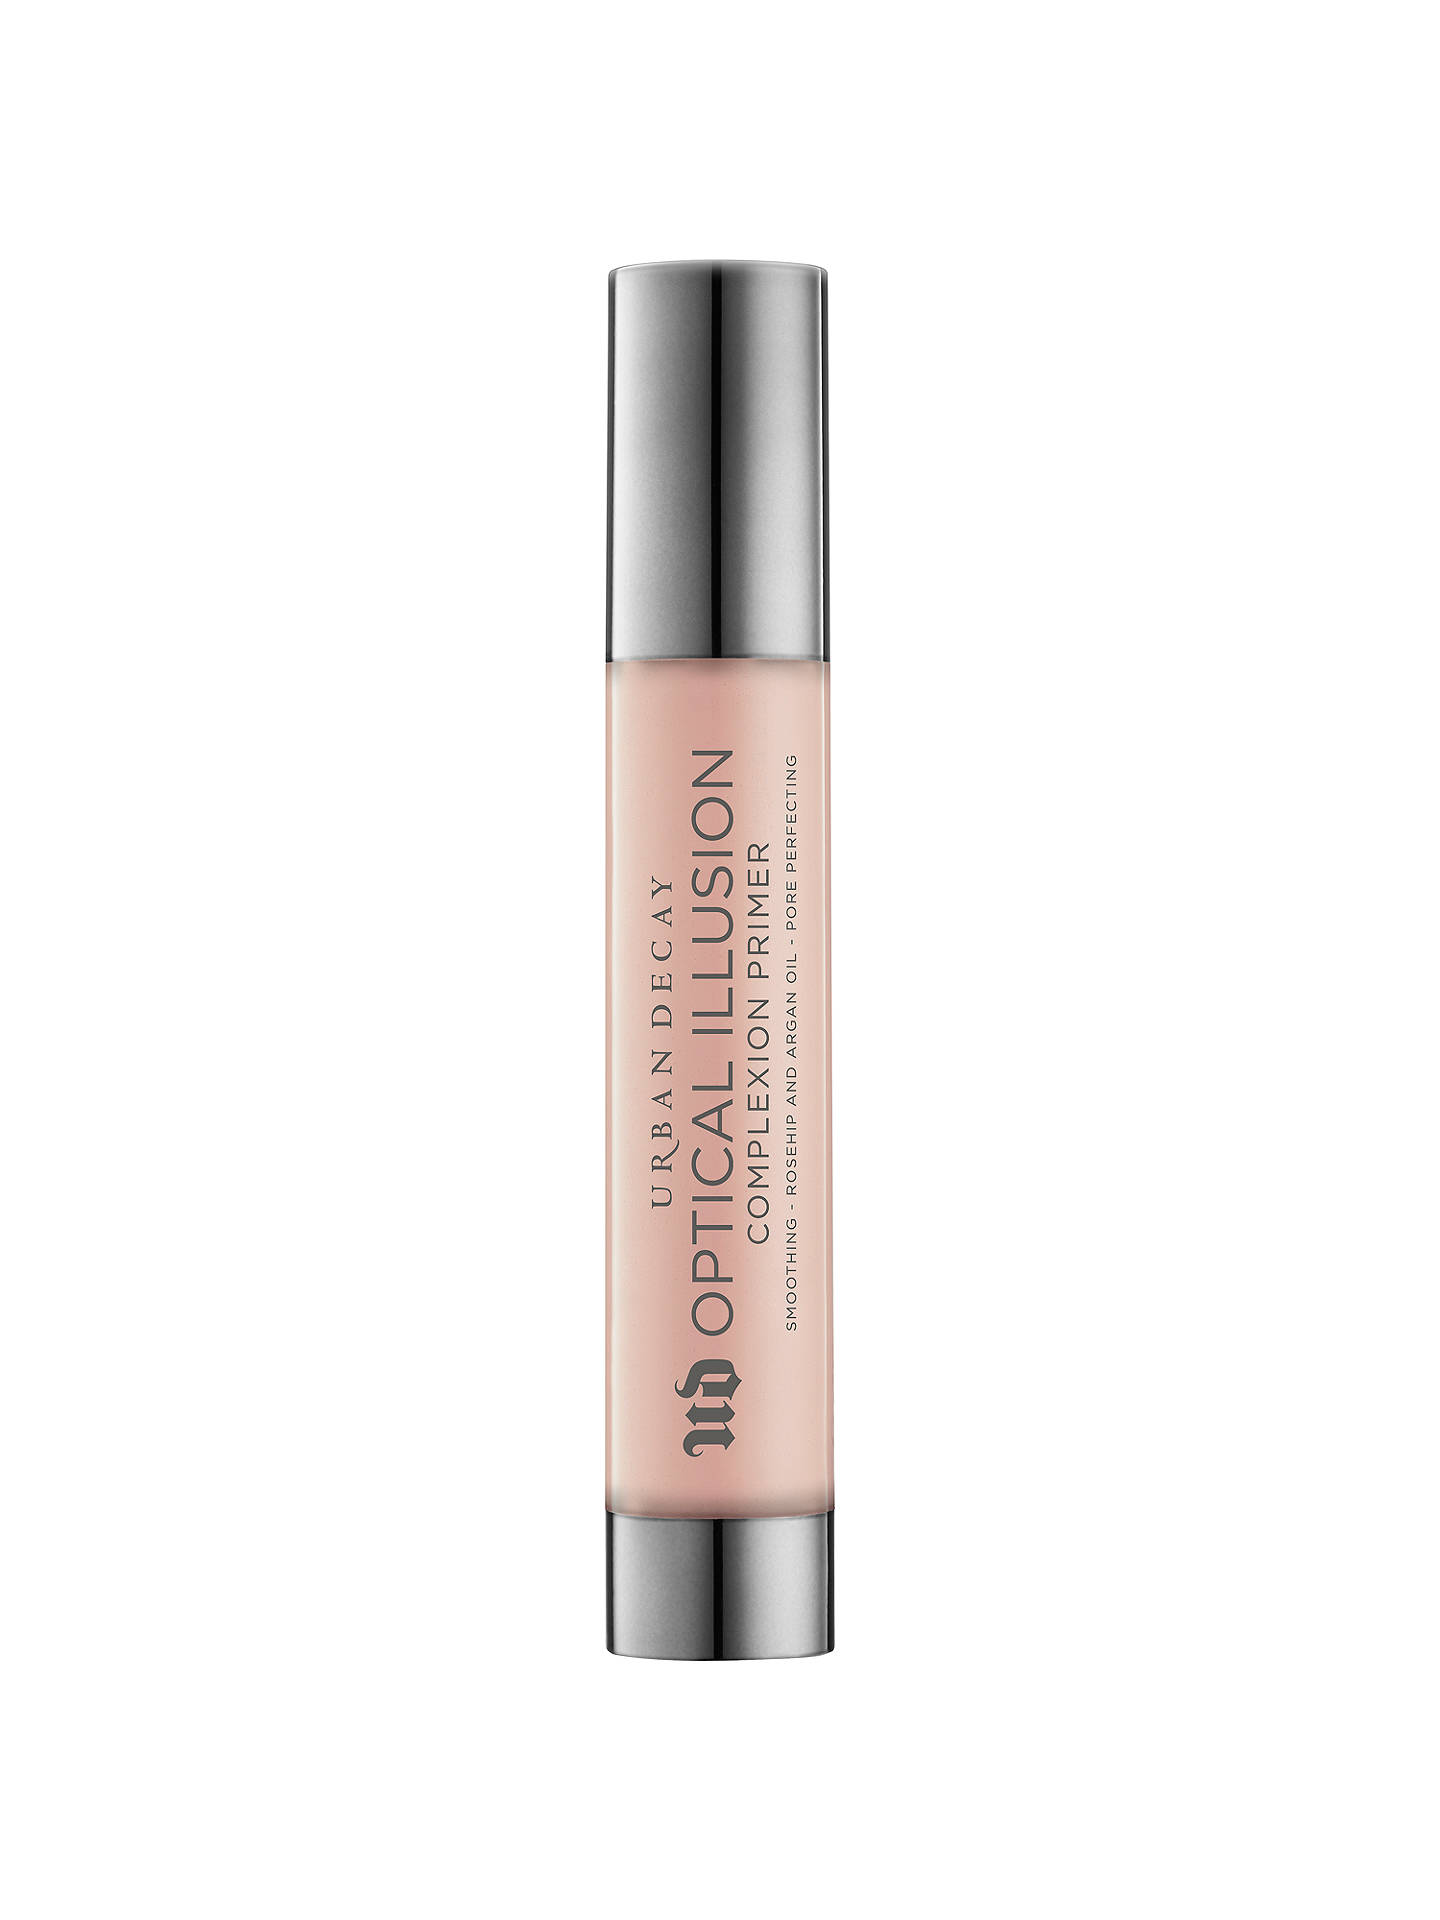 Buy Urban Decay Optical Illusion Complexion Primer Online at johnlewis.com